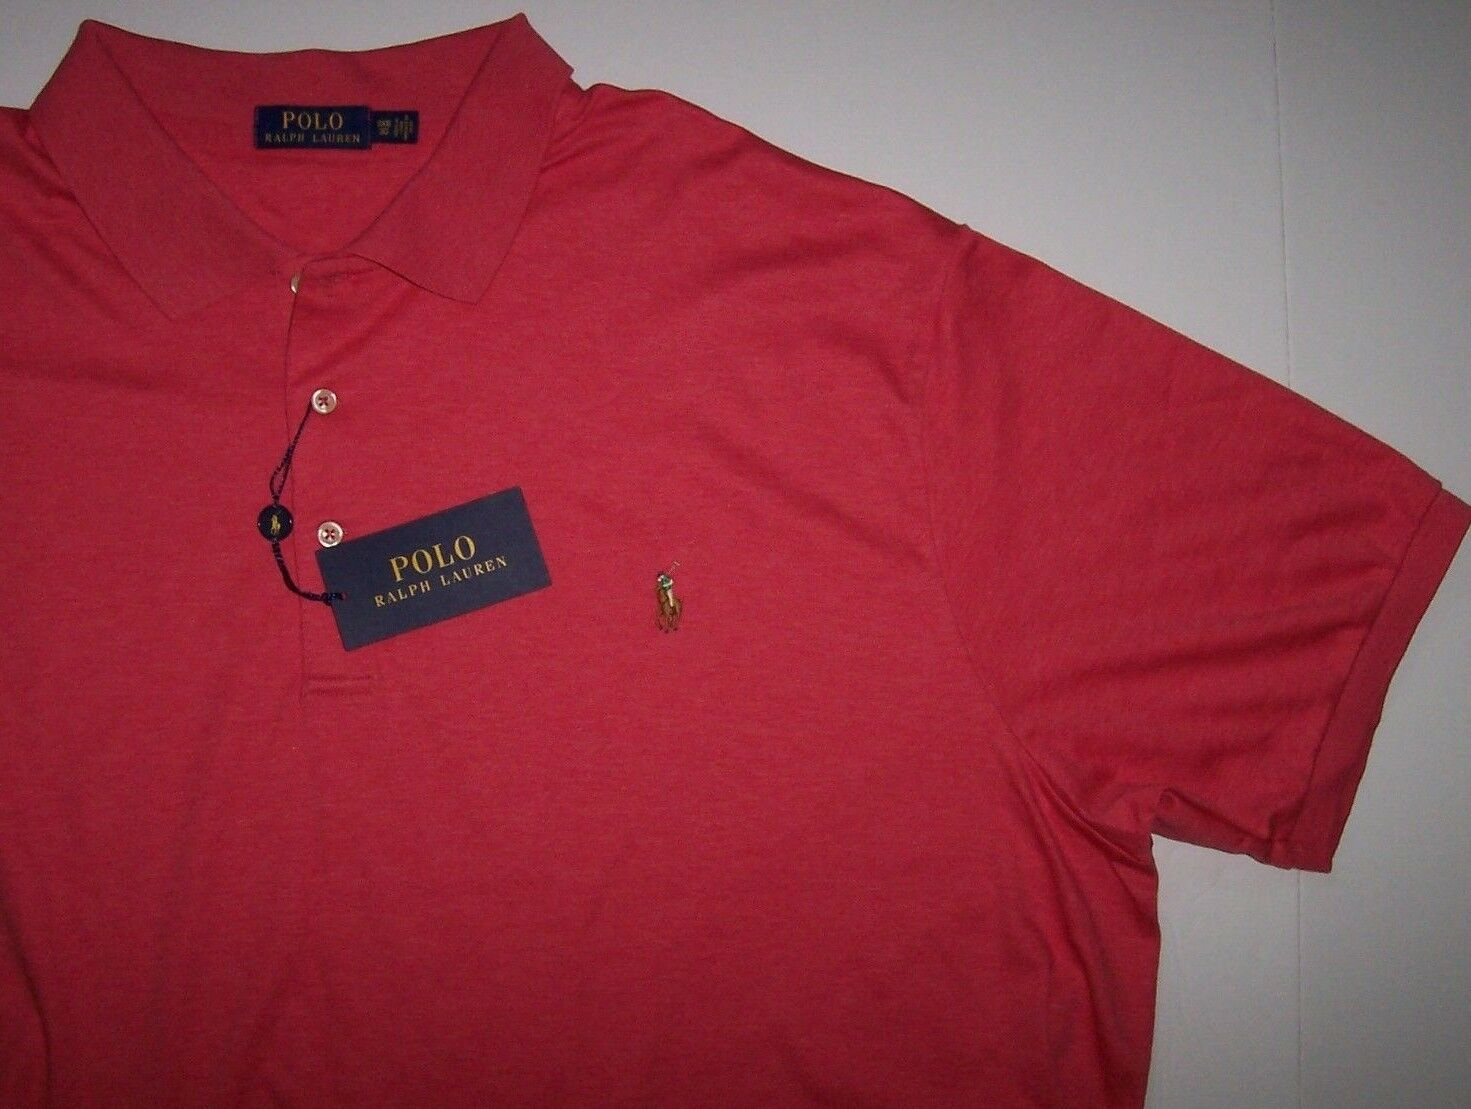 NWT Polo Ralph Lauren SMOOTH Cotton orange Pink Heather Shirt 3XB Big PONY Logo